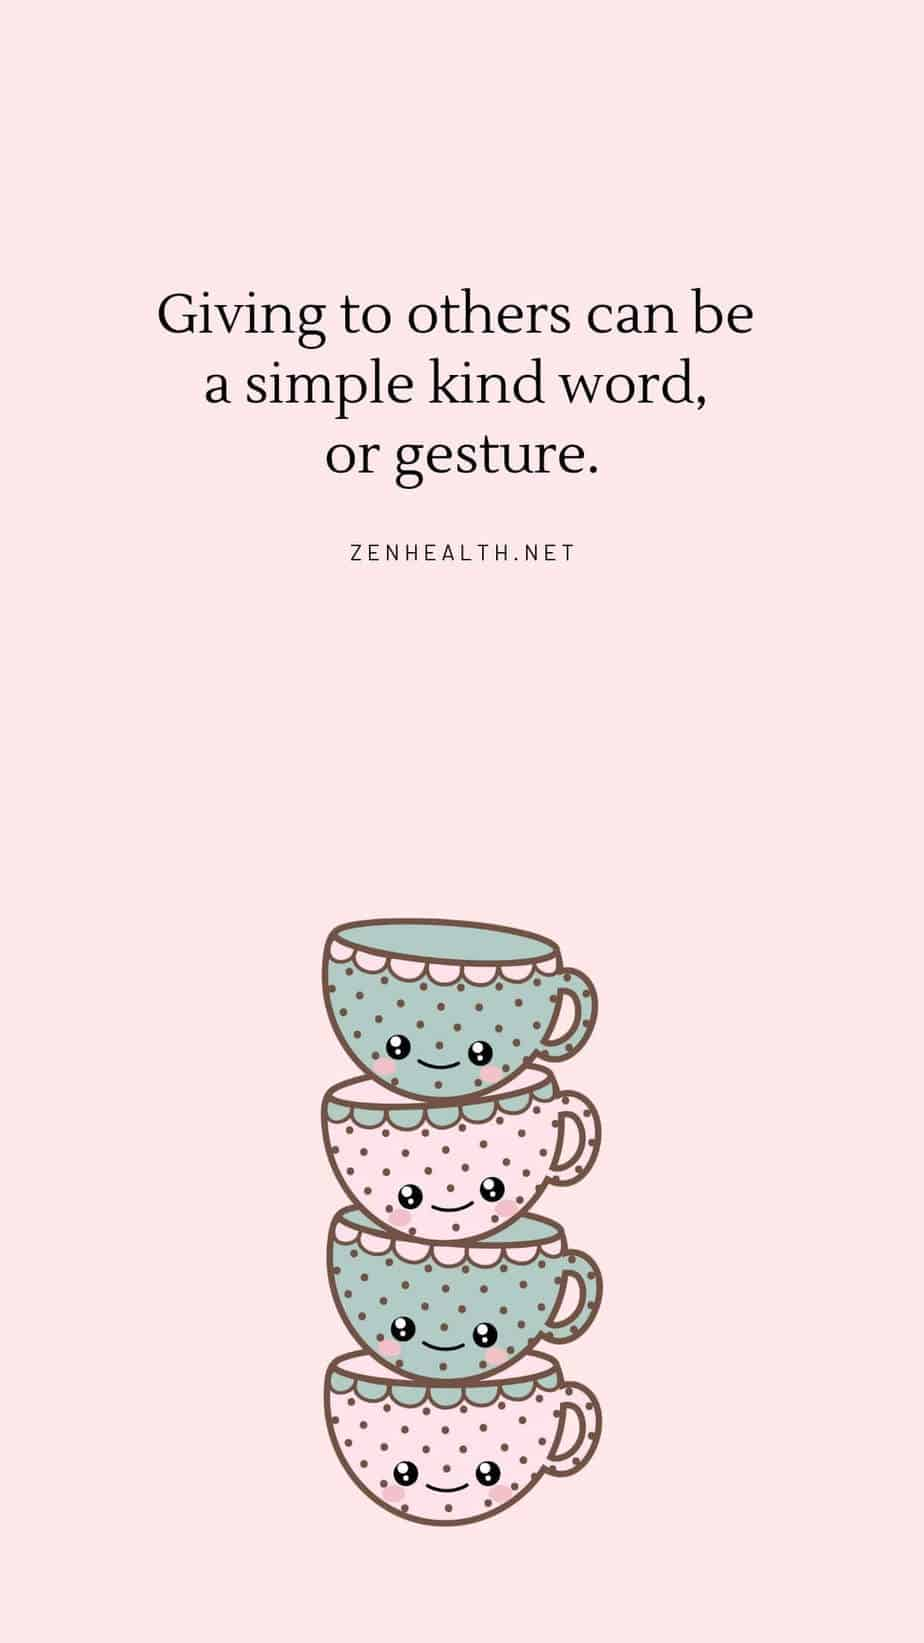 Happiness quotes: Giving to others can be a simple kind word, or gesture.